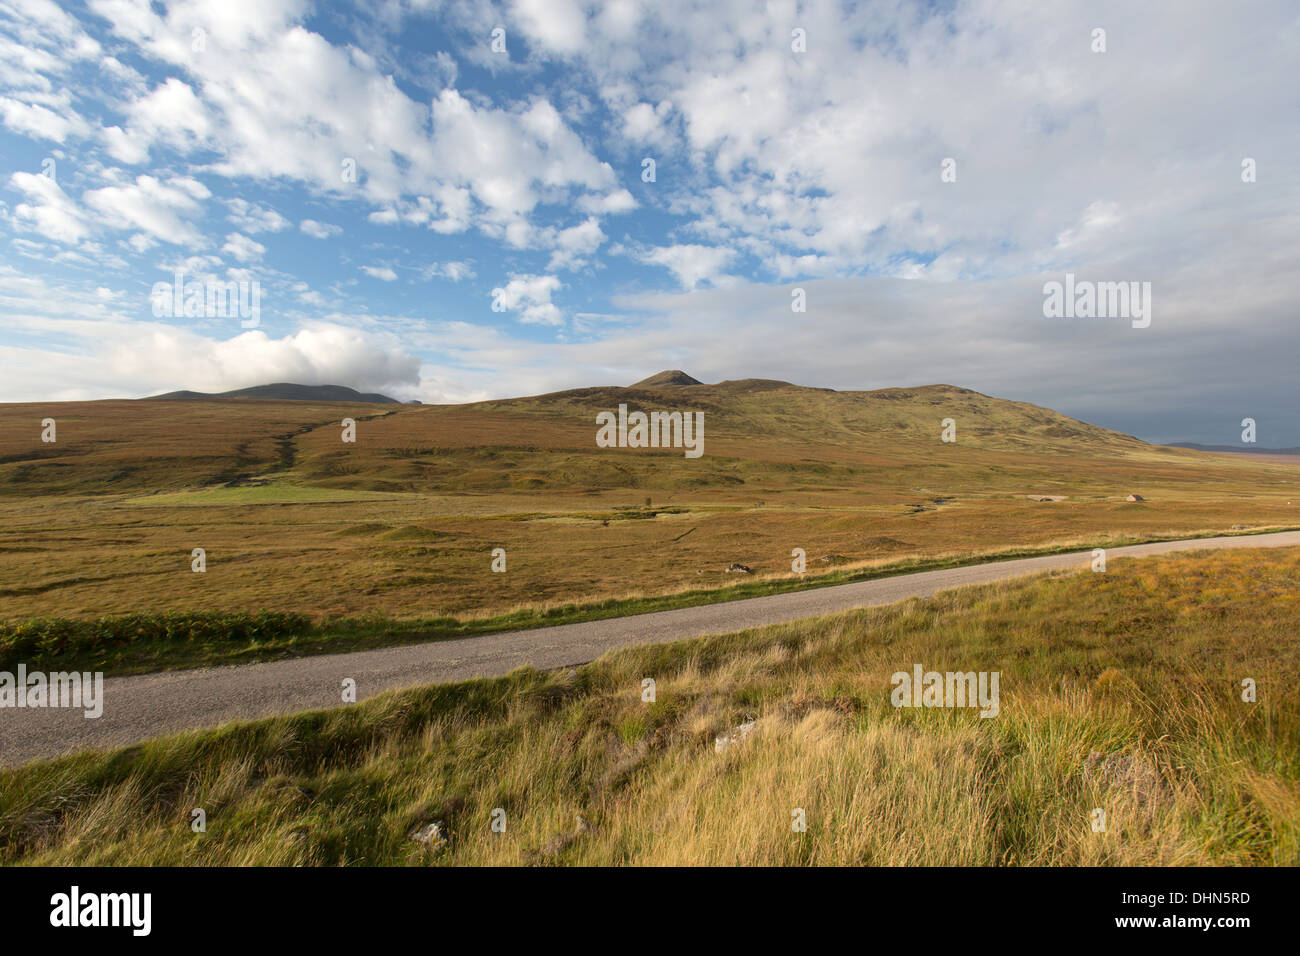 Inchkinloch, Scotland. Picturesque view of the single track A836 Parliamentary road from Bonar Bridge to Tongue. Stock Photo